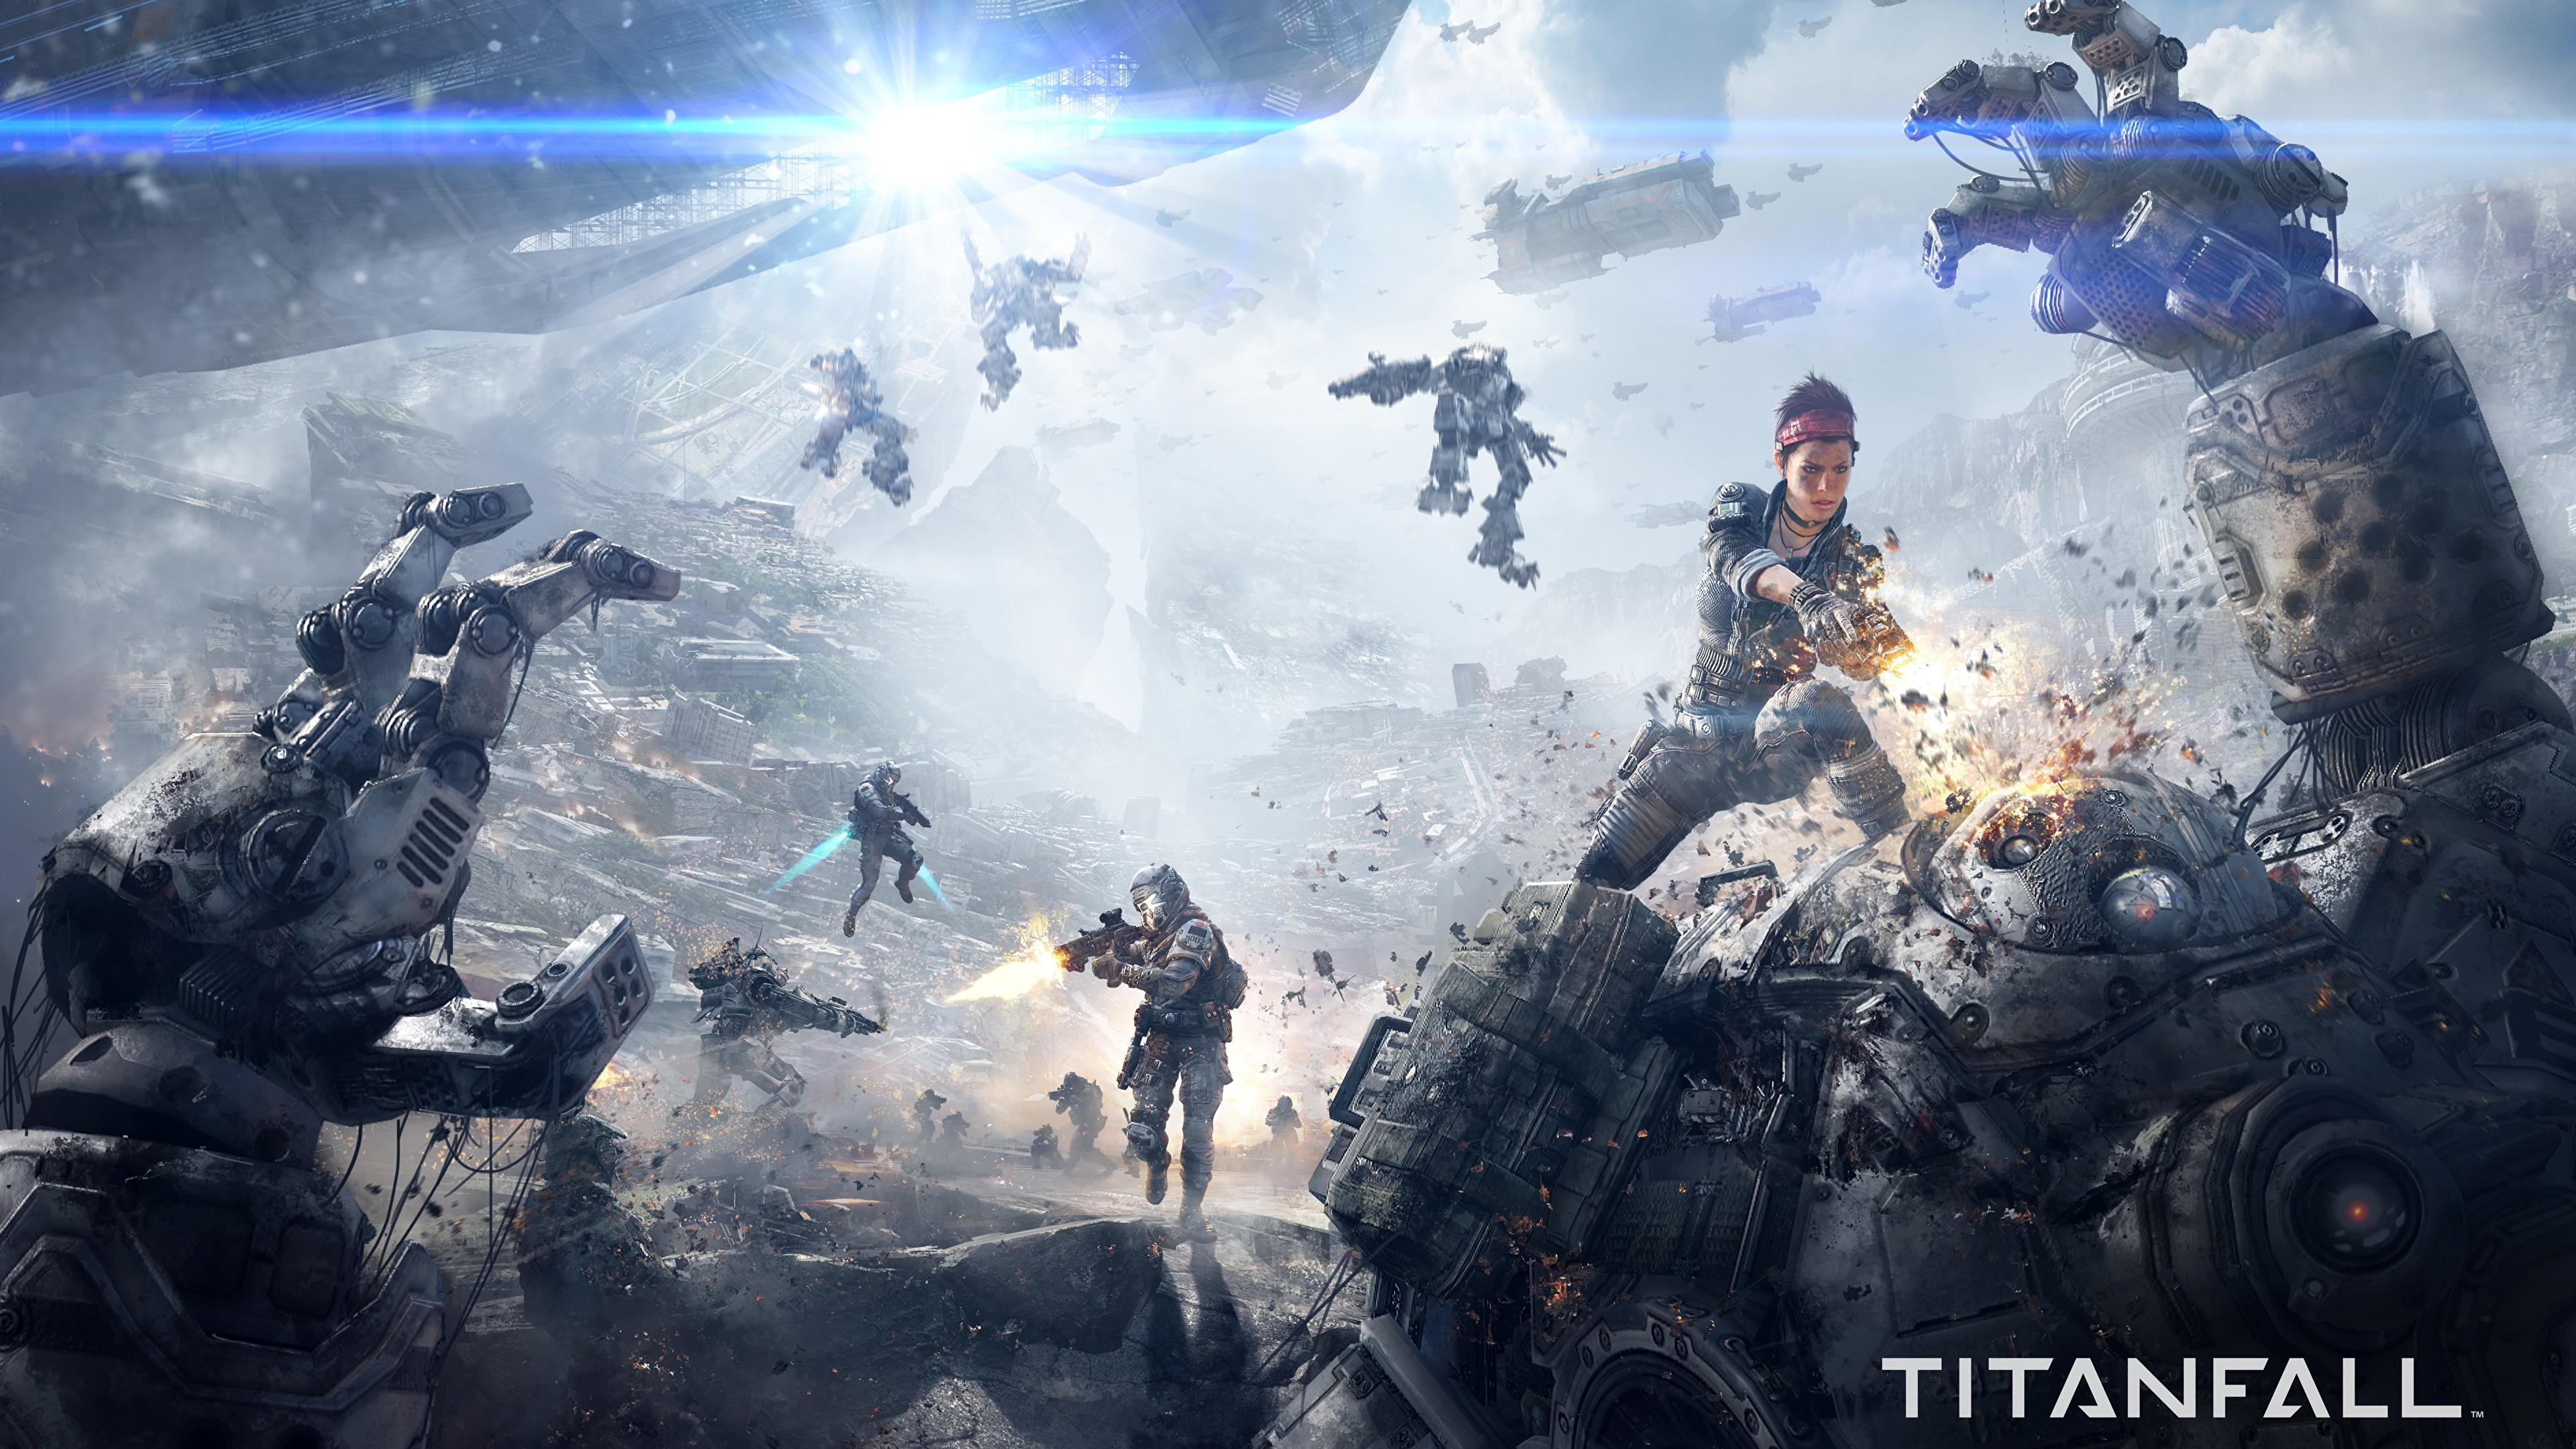 Images robots Warriors Titanfall Fantasy vdeo game 3840x2160